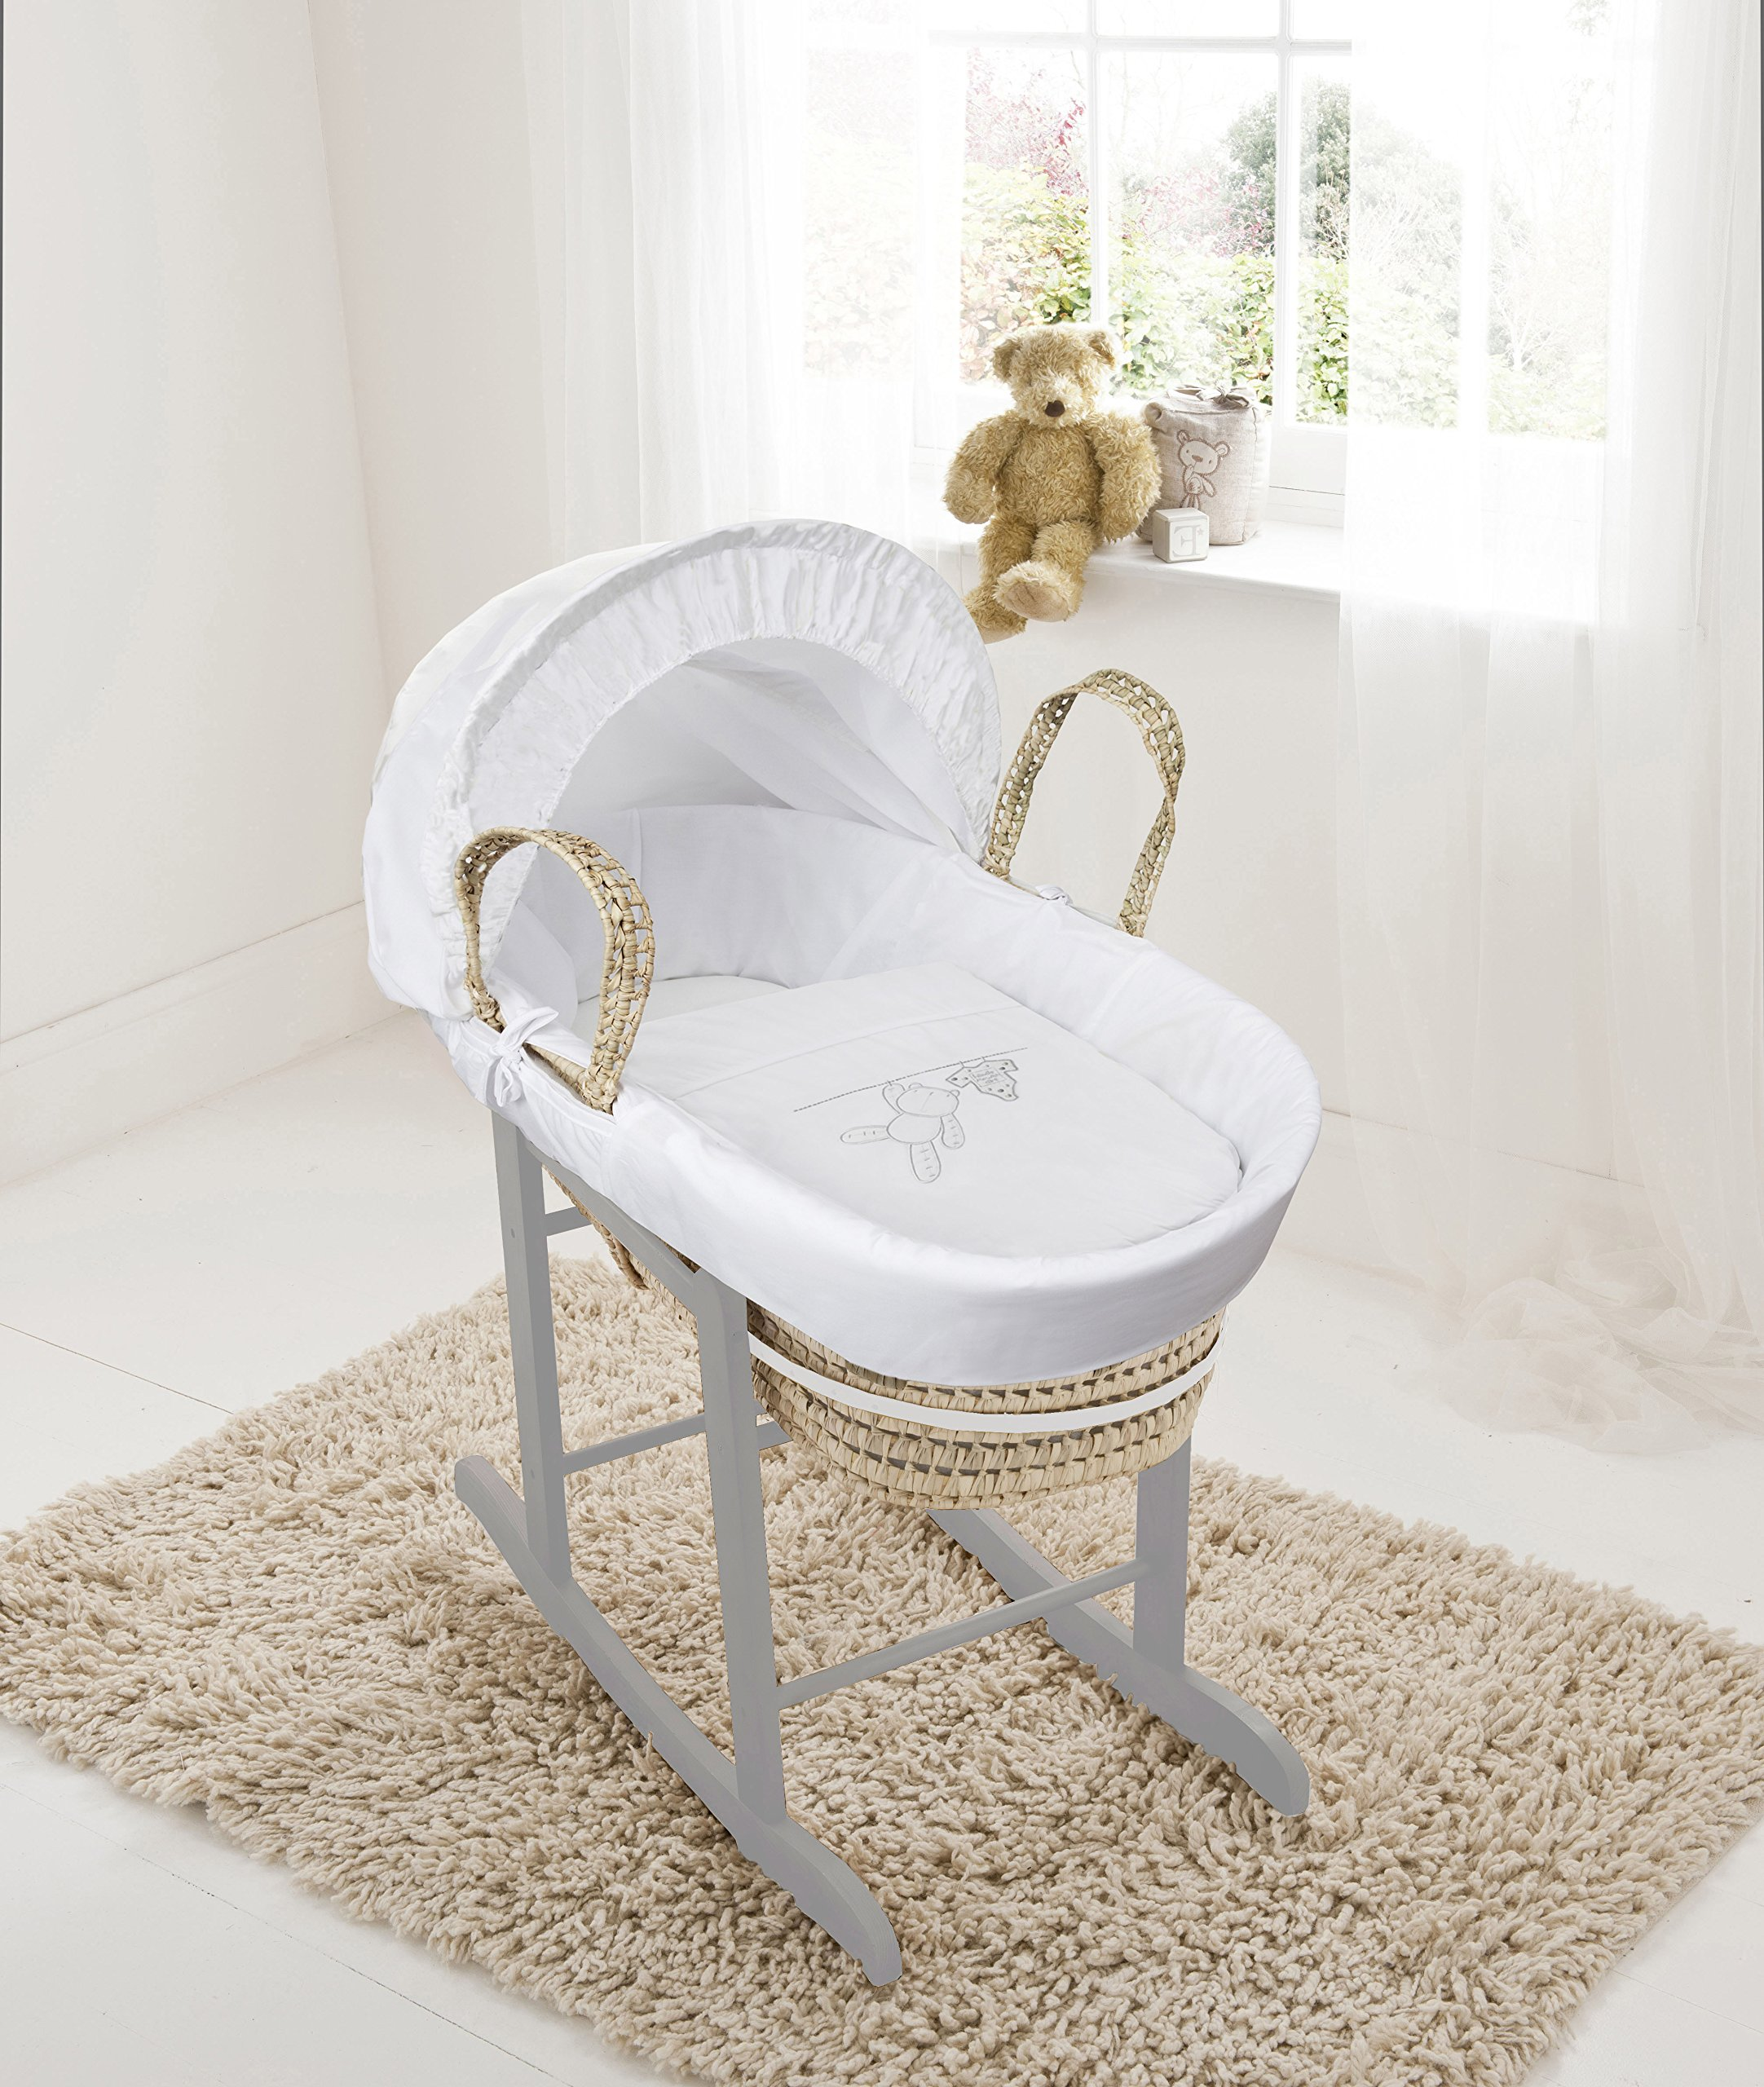 White Teddy Wash Day On Palm Moses Basket & Deluxe Dove Grey Rocking Stand Elegant Baby Suitable from newborn for up to 9kg, this Moses Basket uses Easy-care Poly Cotton with a soft padding surround Suitable from newborn to 9 months It also includes a comfortable mattress and an adjustable hood perfect to create a cosy sleeping space for your precious little one 1